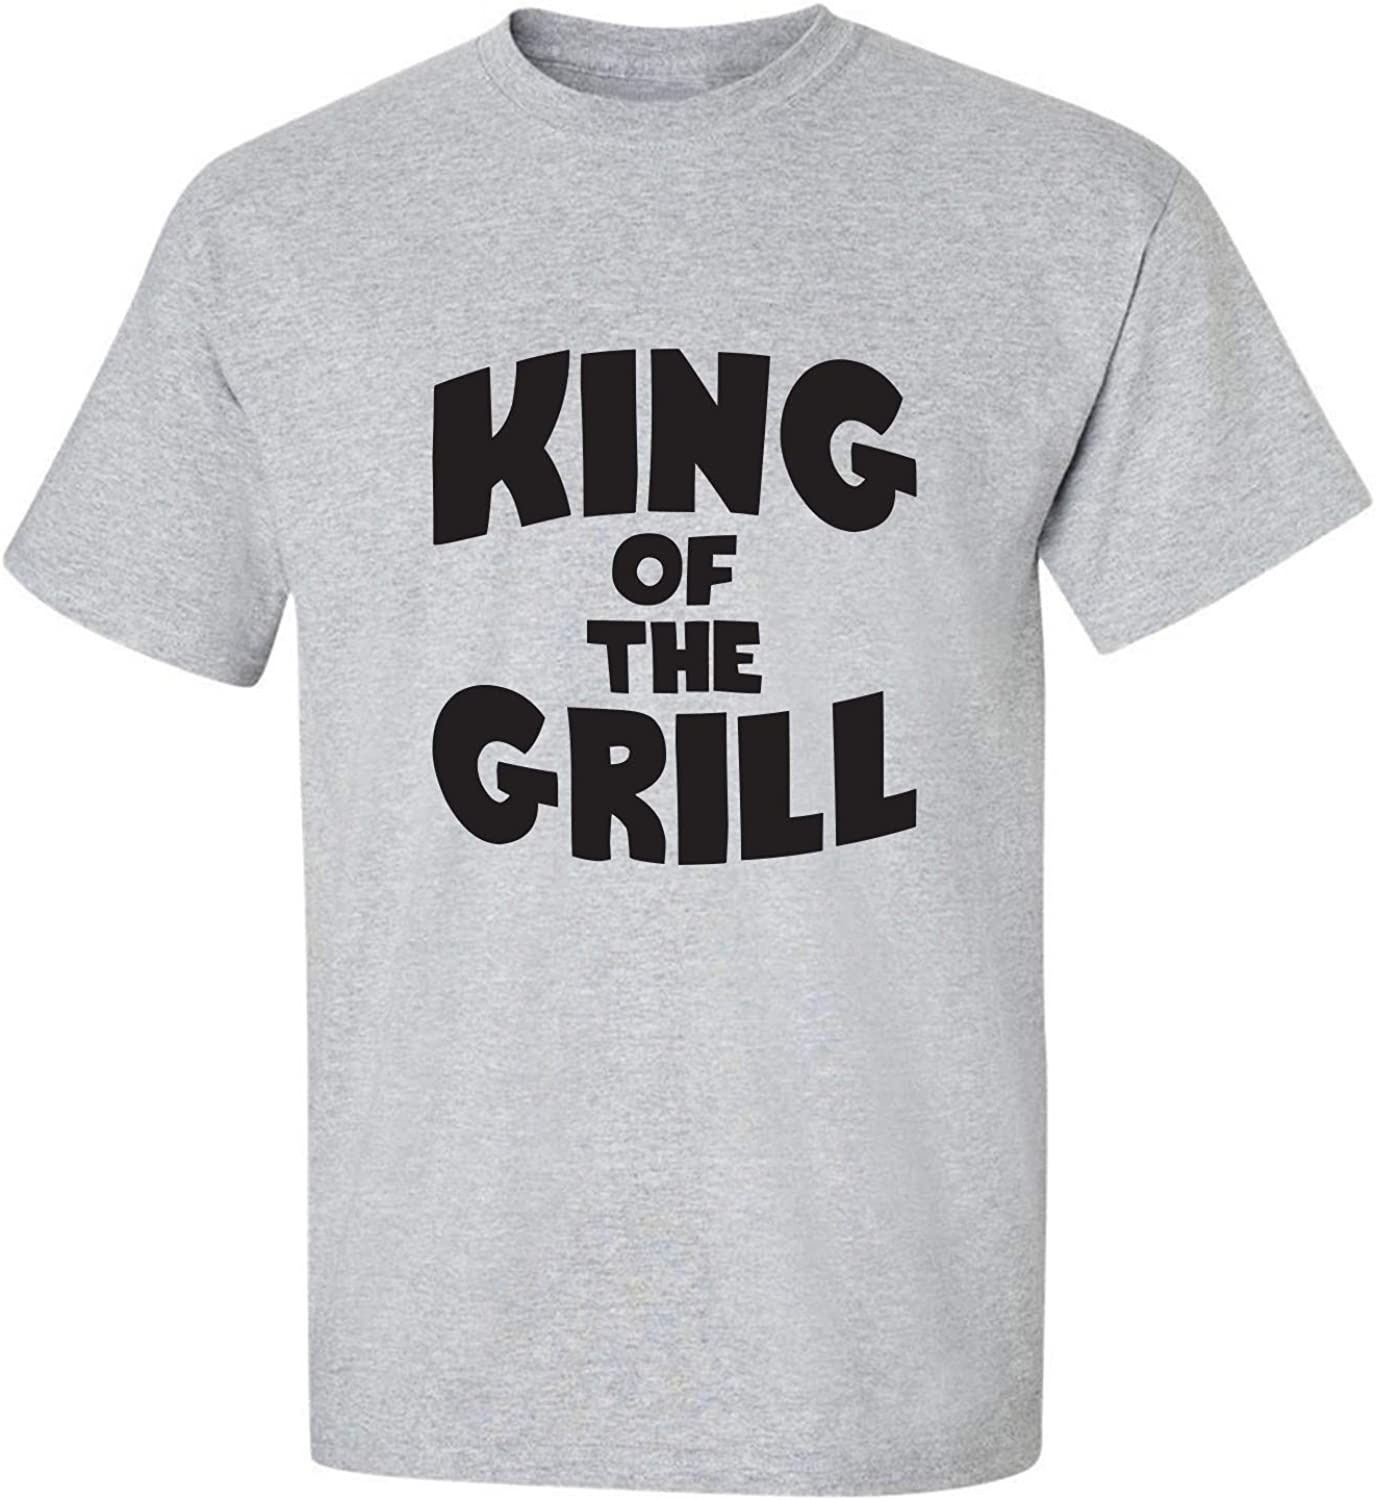 King of The Grill Adult Short Sleeve T-Shirt